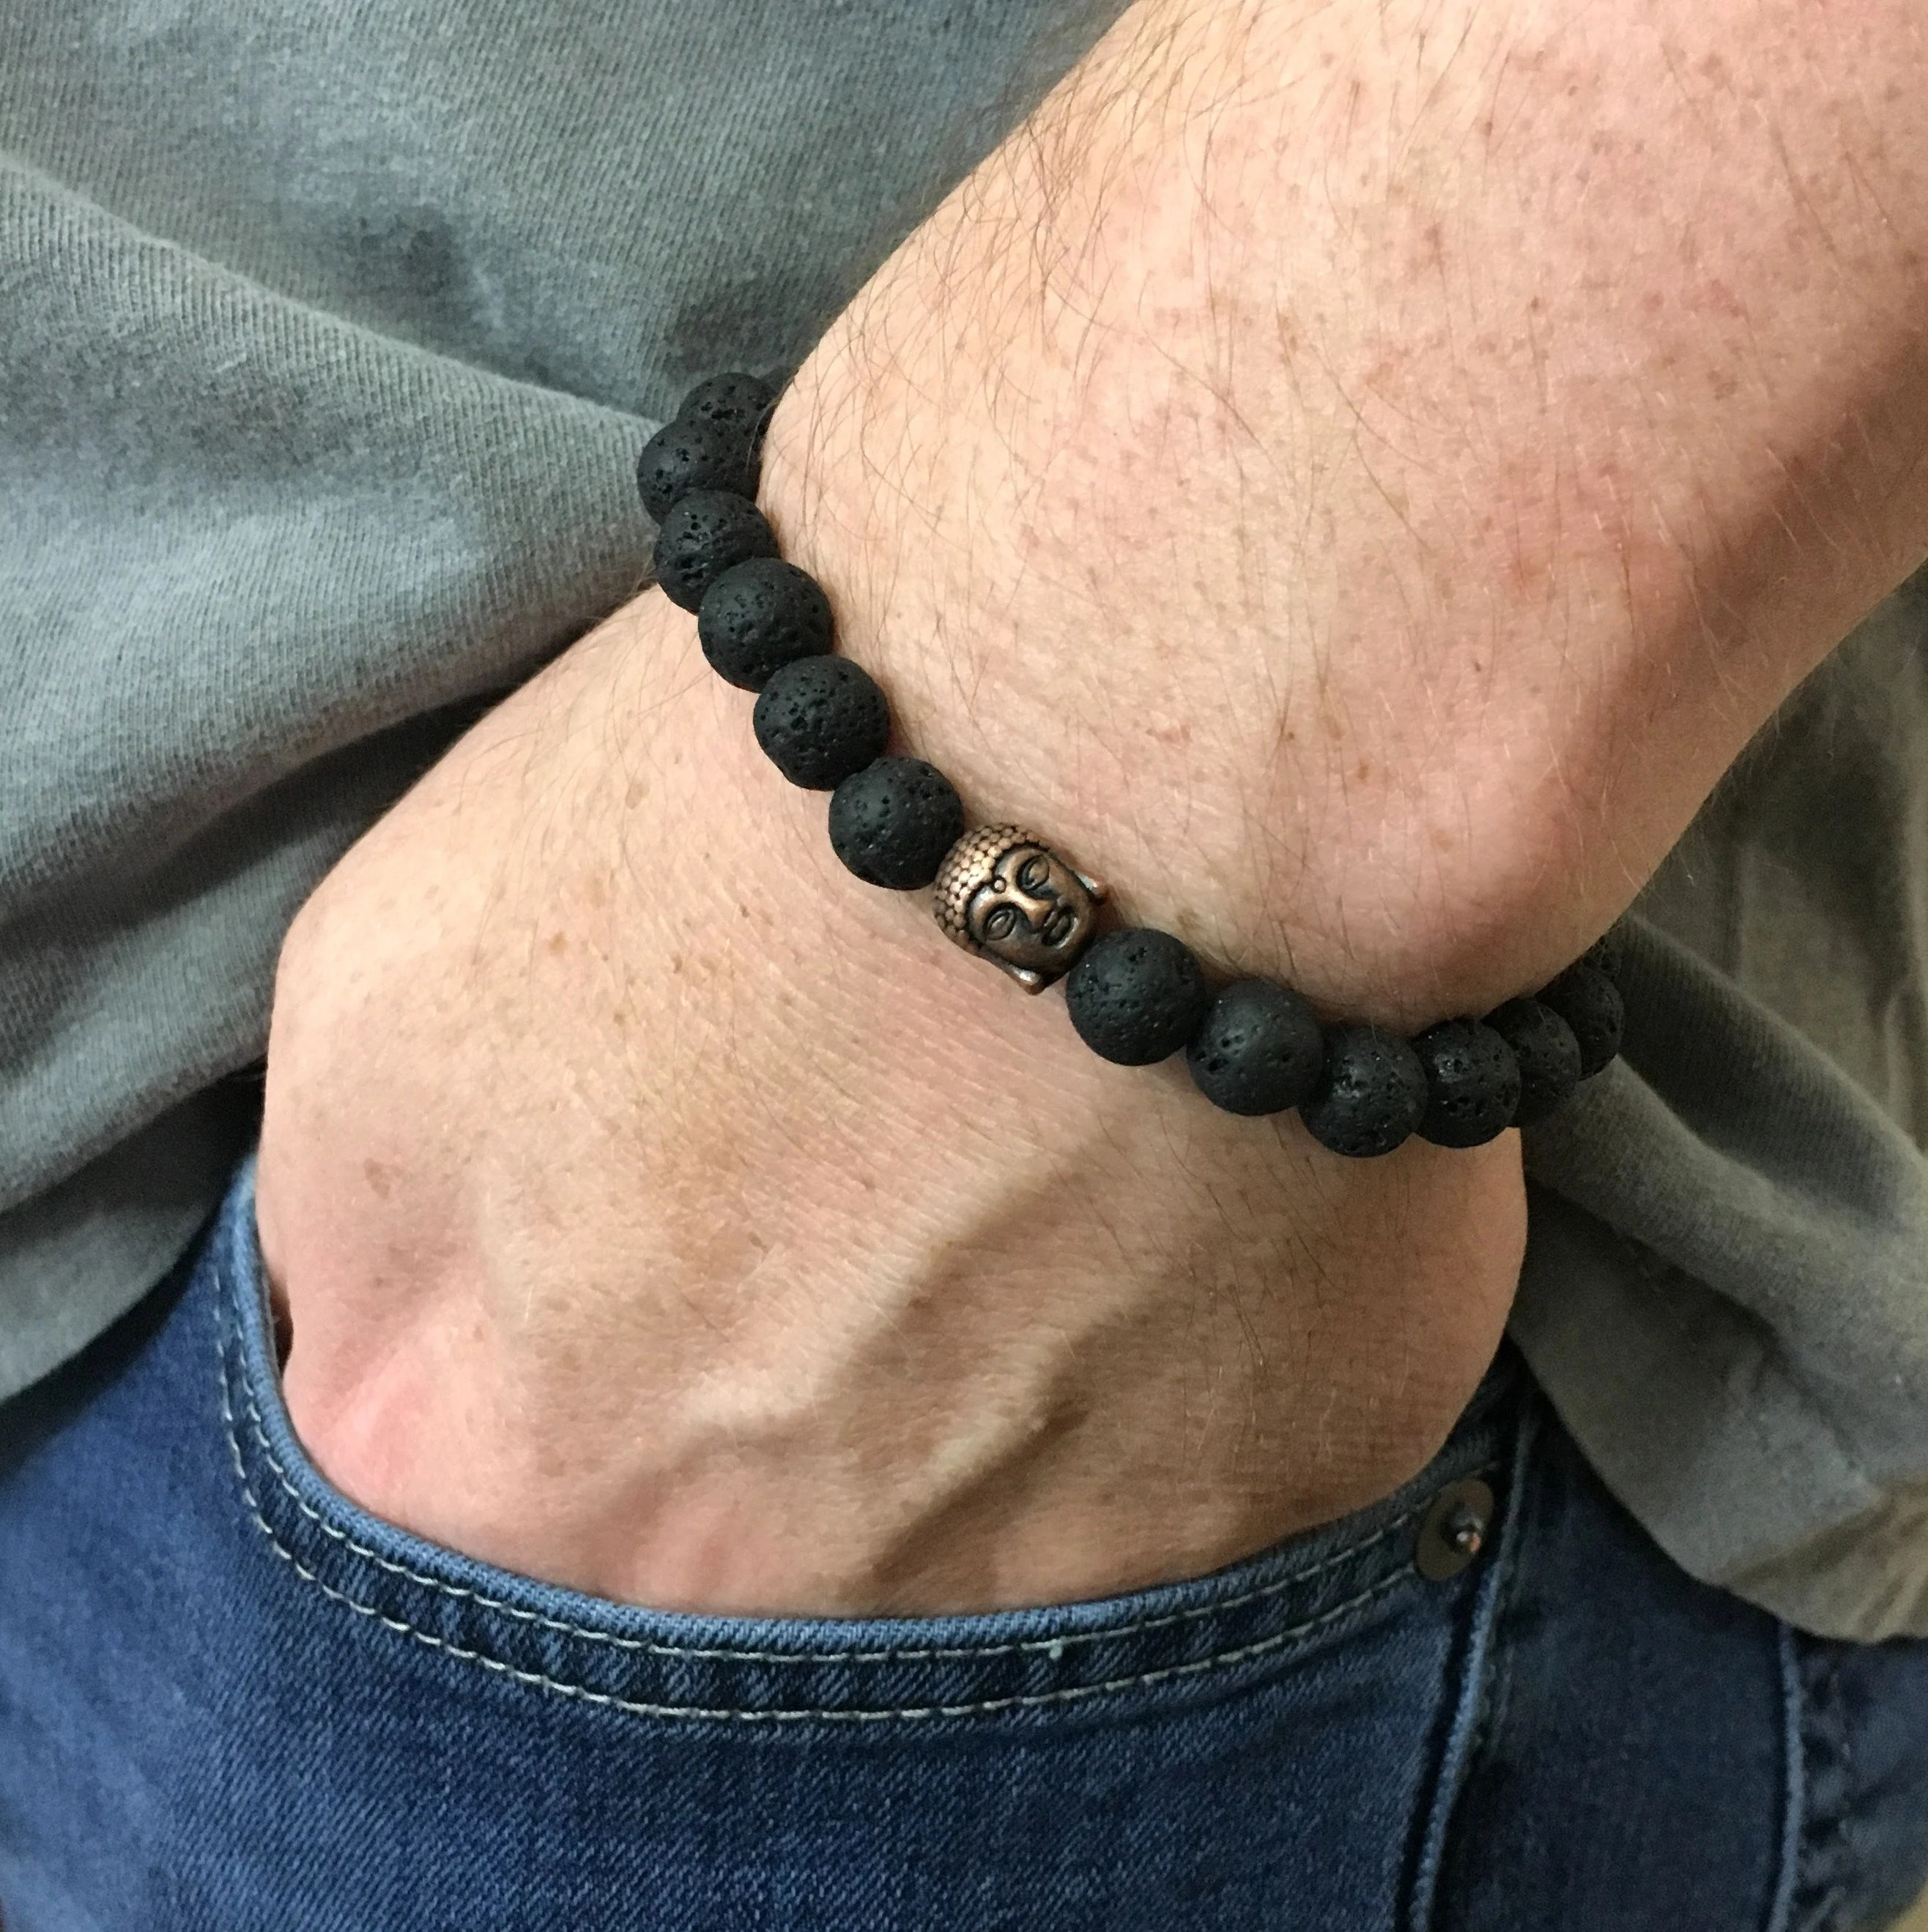 8mm Jeans Lava Stone Buddha Bracelet Unisex 8mm Beads Antiqued Copper Buddha Bead Stretch Custom Sizing